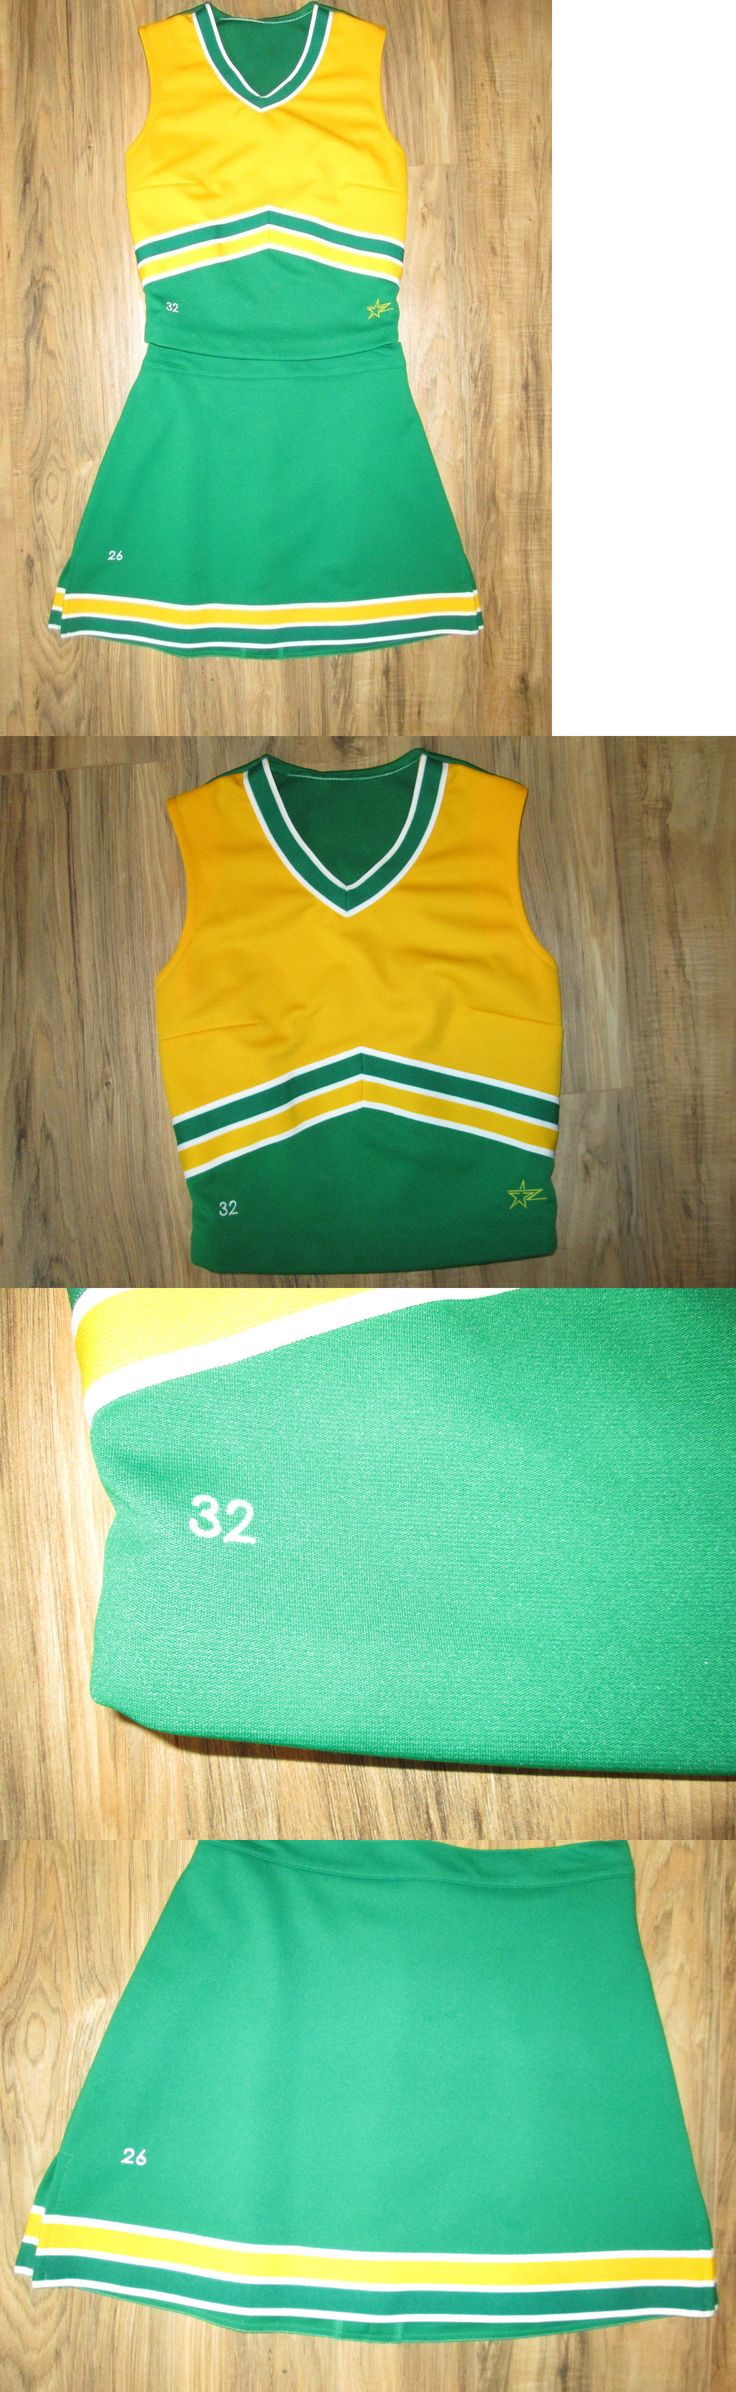 Cheerleading 66832: New Kelly Green Gold Cheerleader Uniform Cheer Outfit Costume 32/26 Cheerleading -> BUY IT NOW ONLY: $30.0 on eBay!